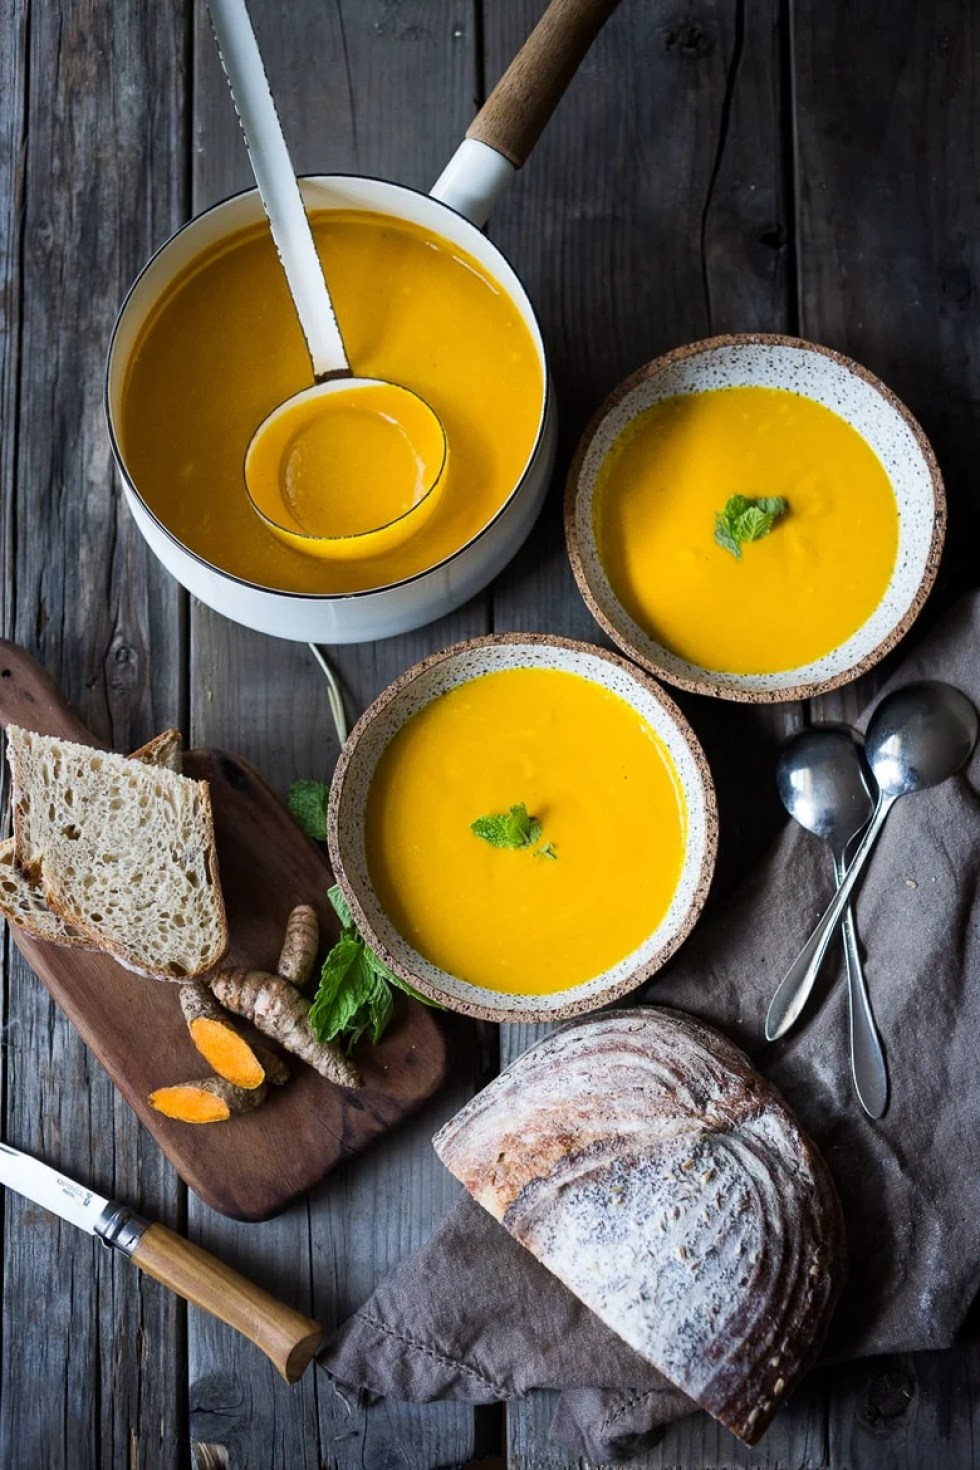 10 Simple Powerful Turmeric Recipes to Heal, Sooth and Protect | Add fresh turmeric to soups, like this Glowing Carrot, turmeric and ginger soup. | www.feastingathome.com